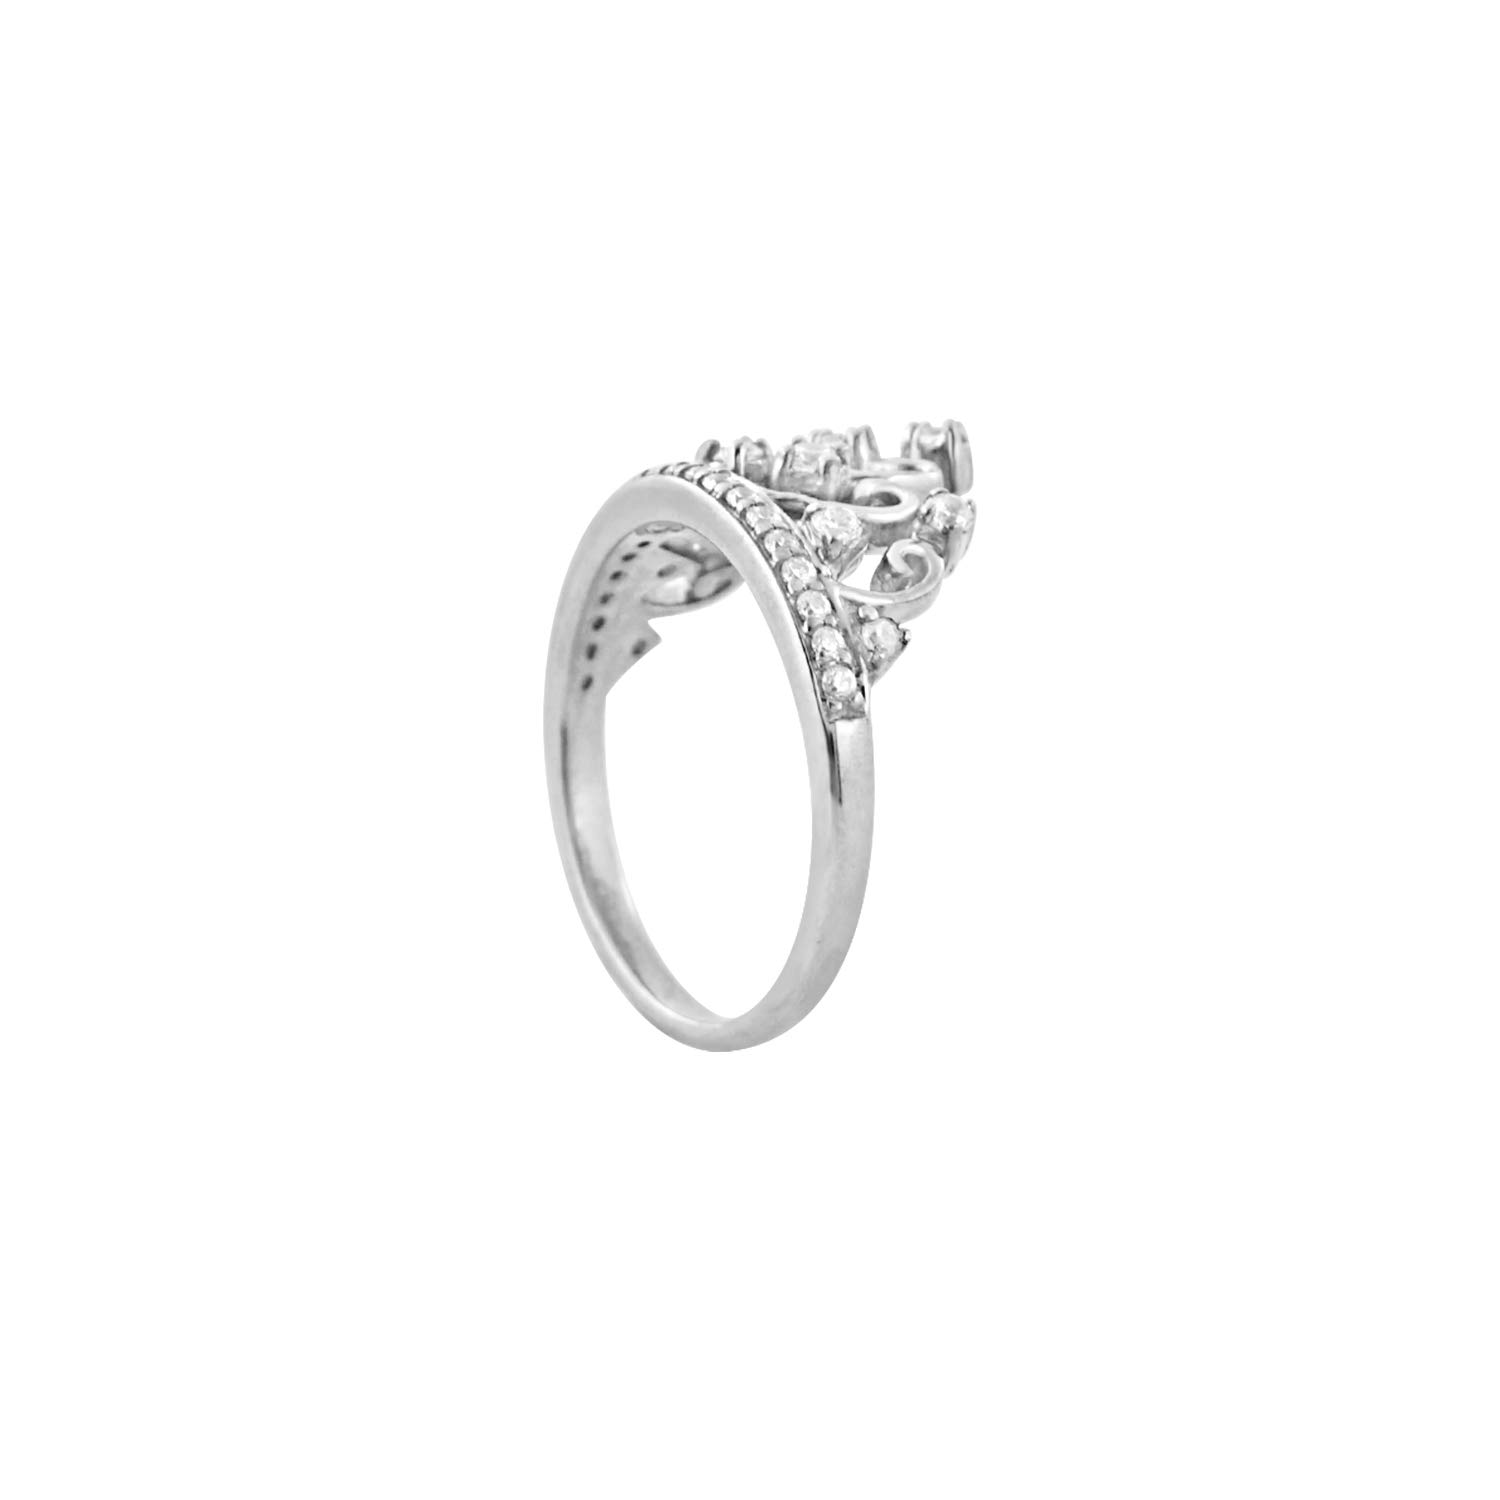 Diamond Scotch Round White Cubic Zirconia Tiara Princess Queen Crown Ring Best for Women Girls in 14k White Gold Over by Diamond Scotch (Image #4)